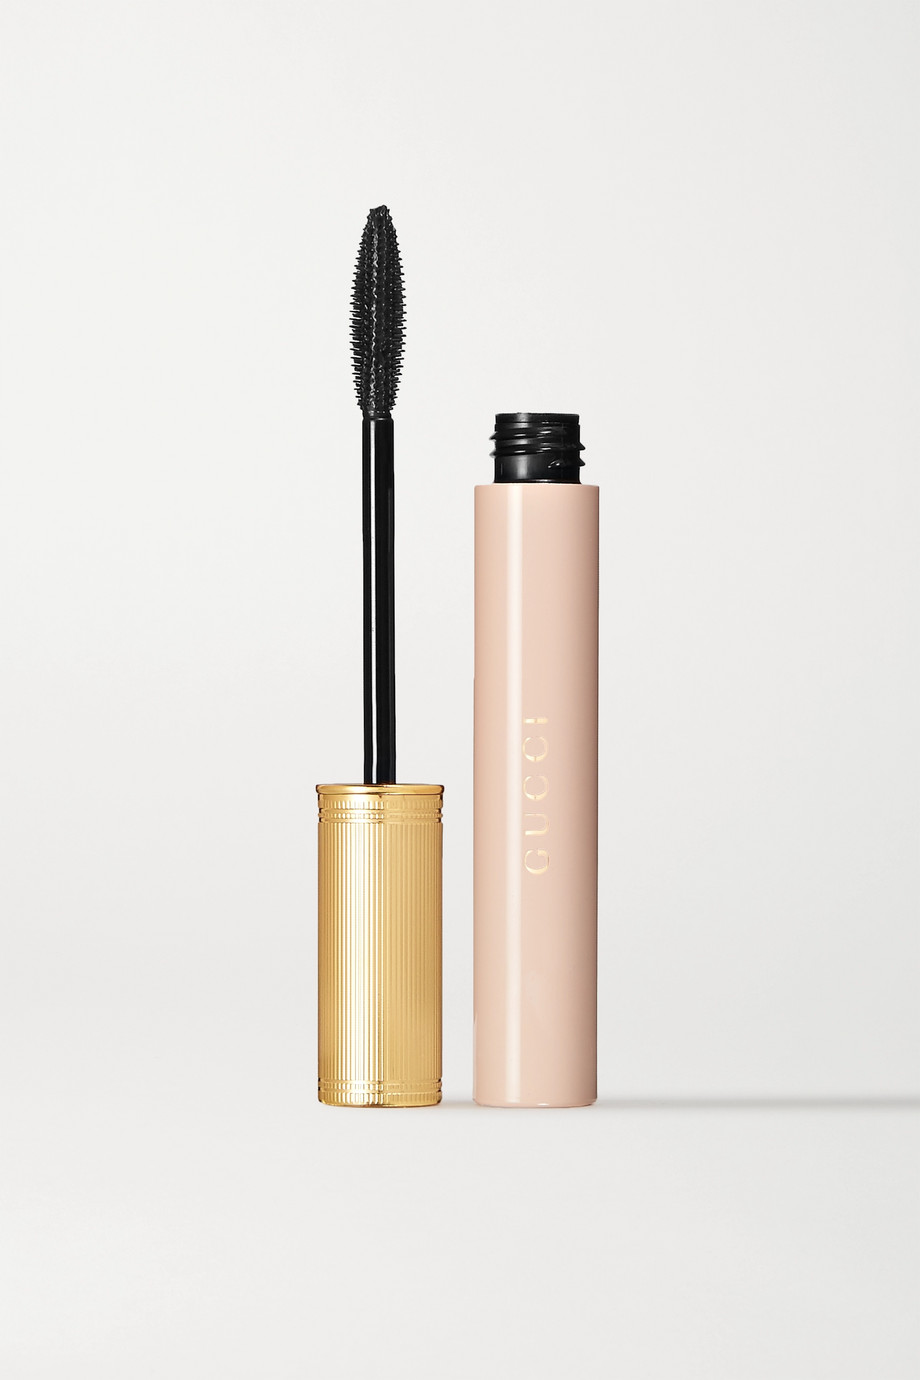 Gucci Beauty Mascara L'Obscur - Eve Black